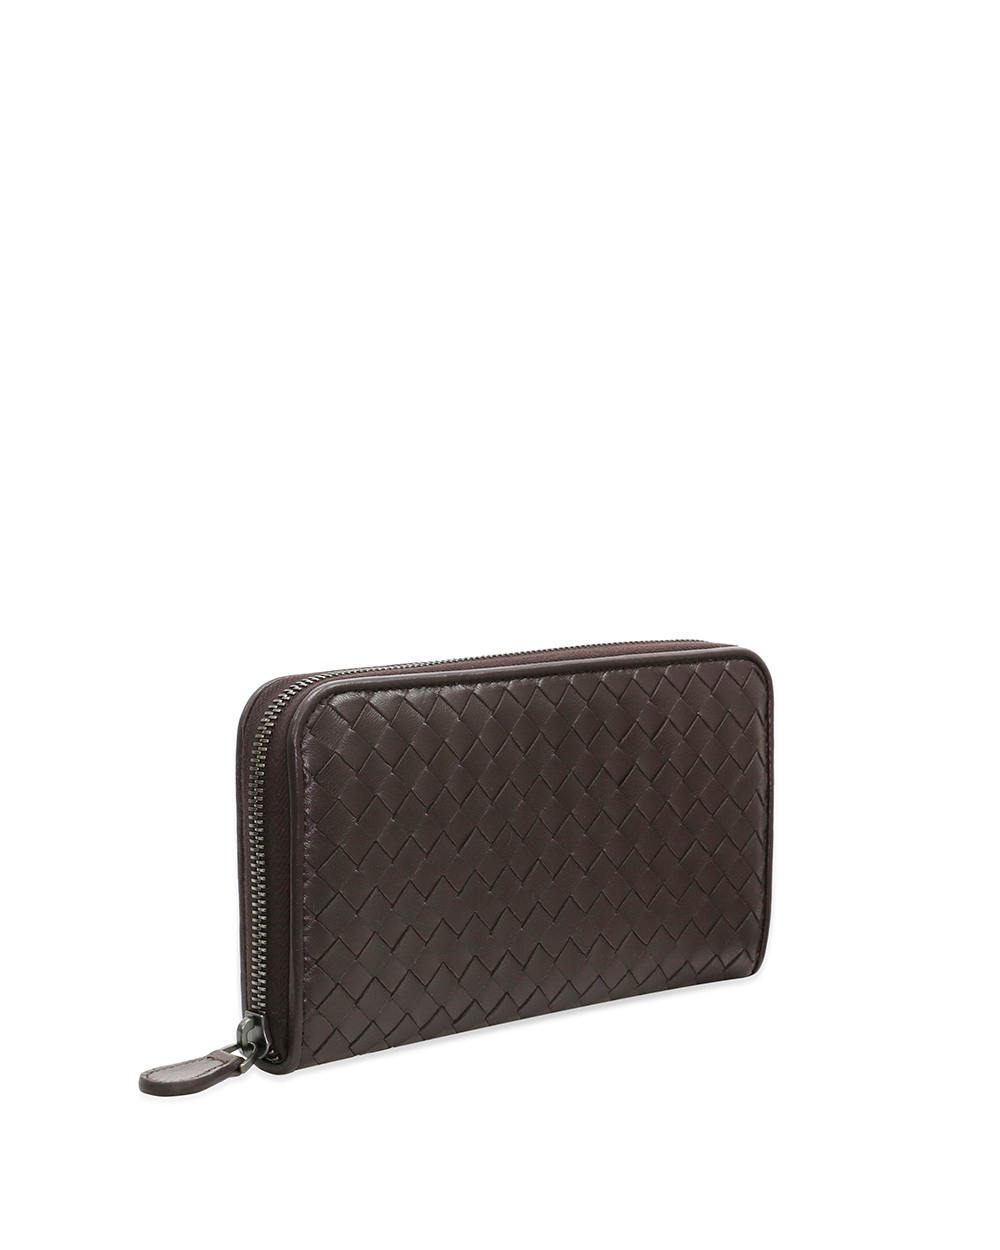 Woven Lamb Leather Zip Wallet 3